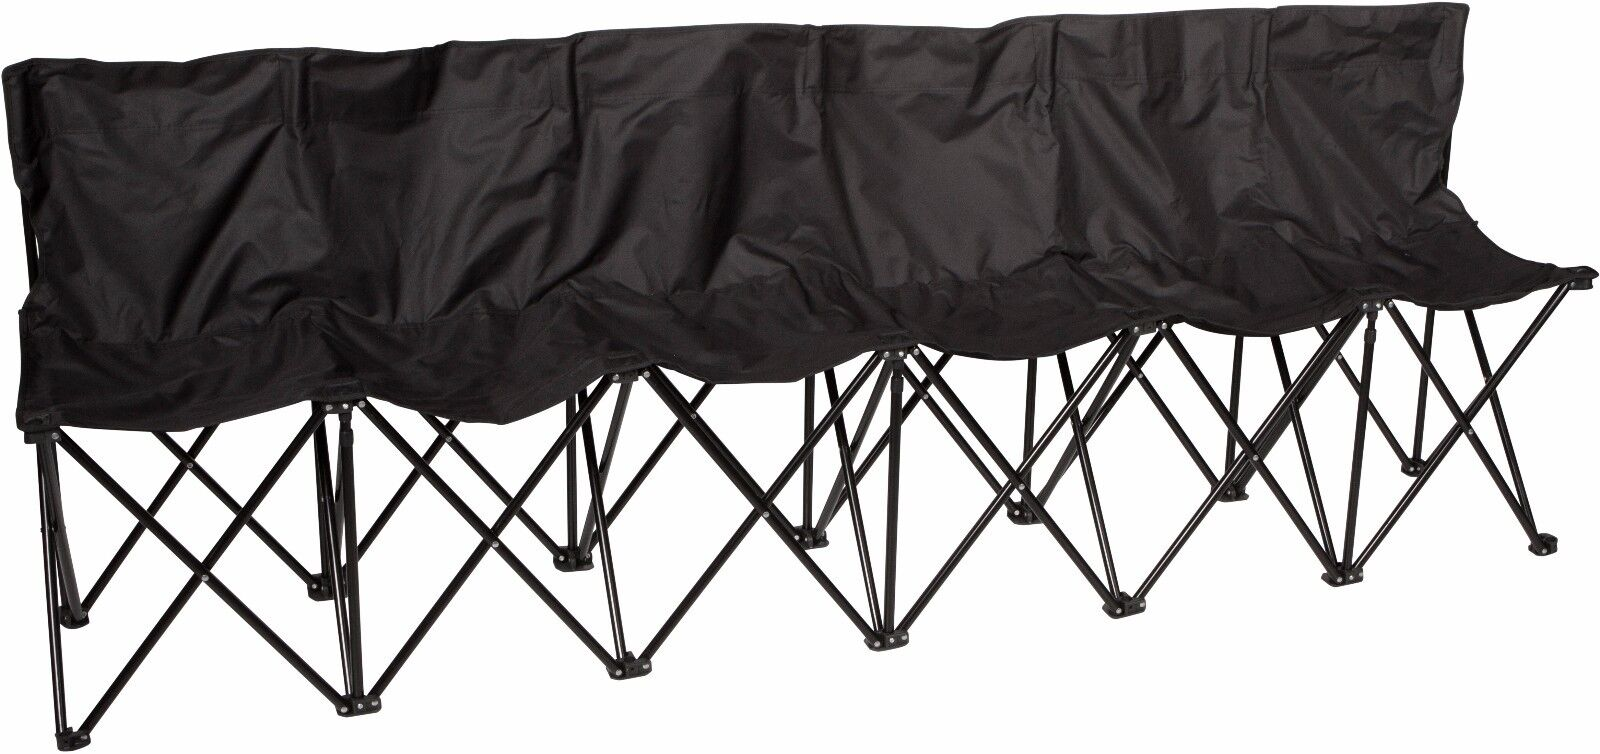 Folding Sports 6 Seater Sideline Bench By Trademark Innovations